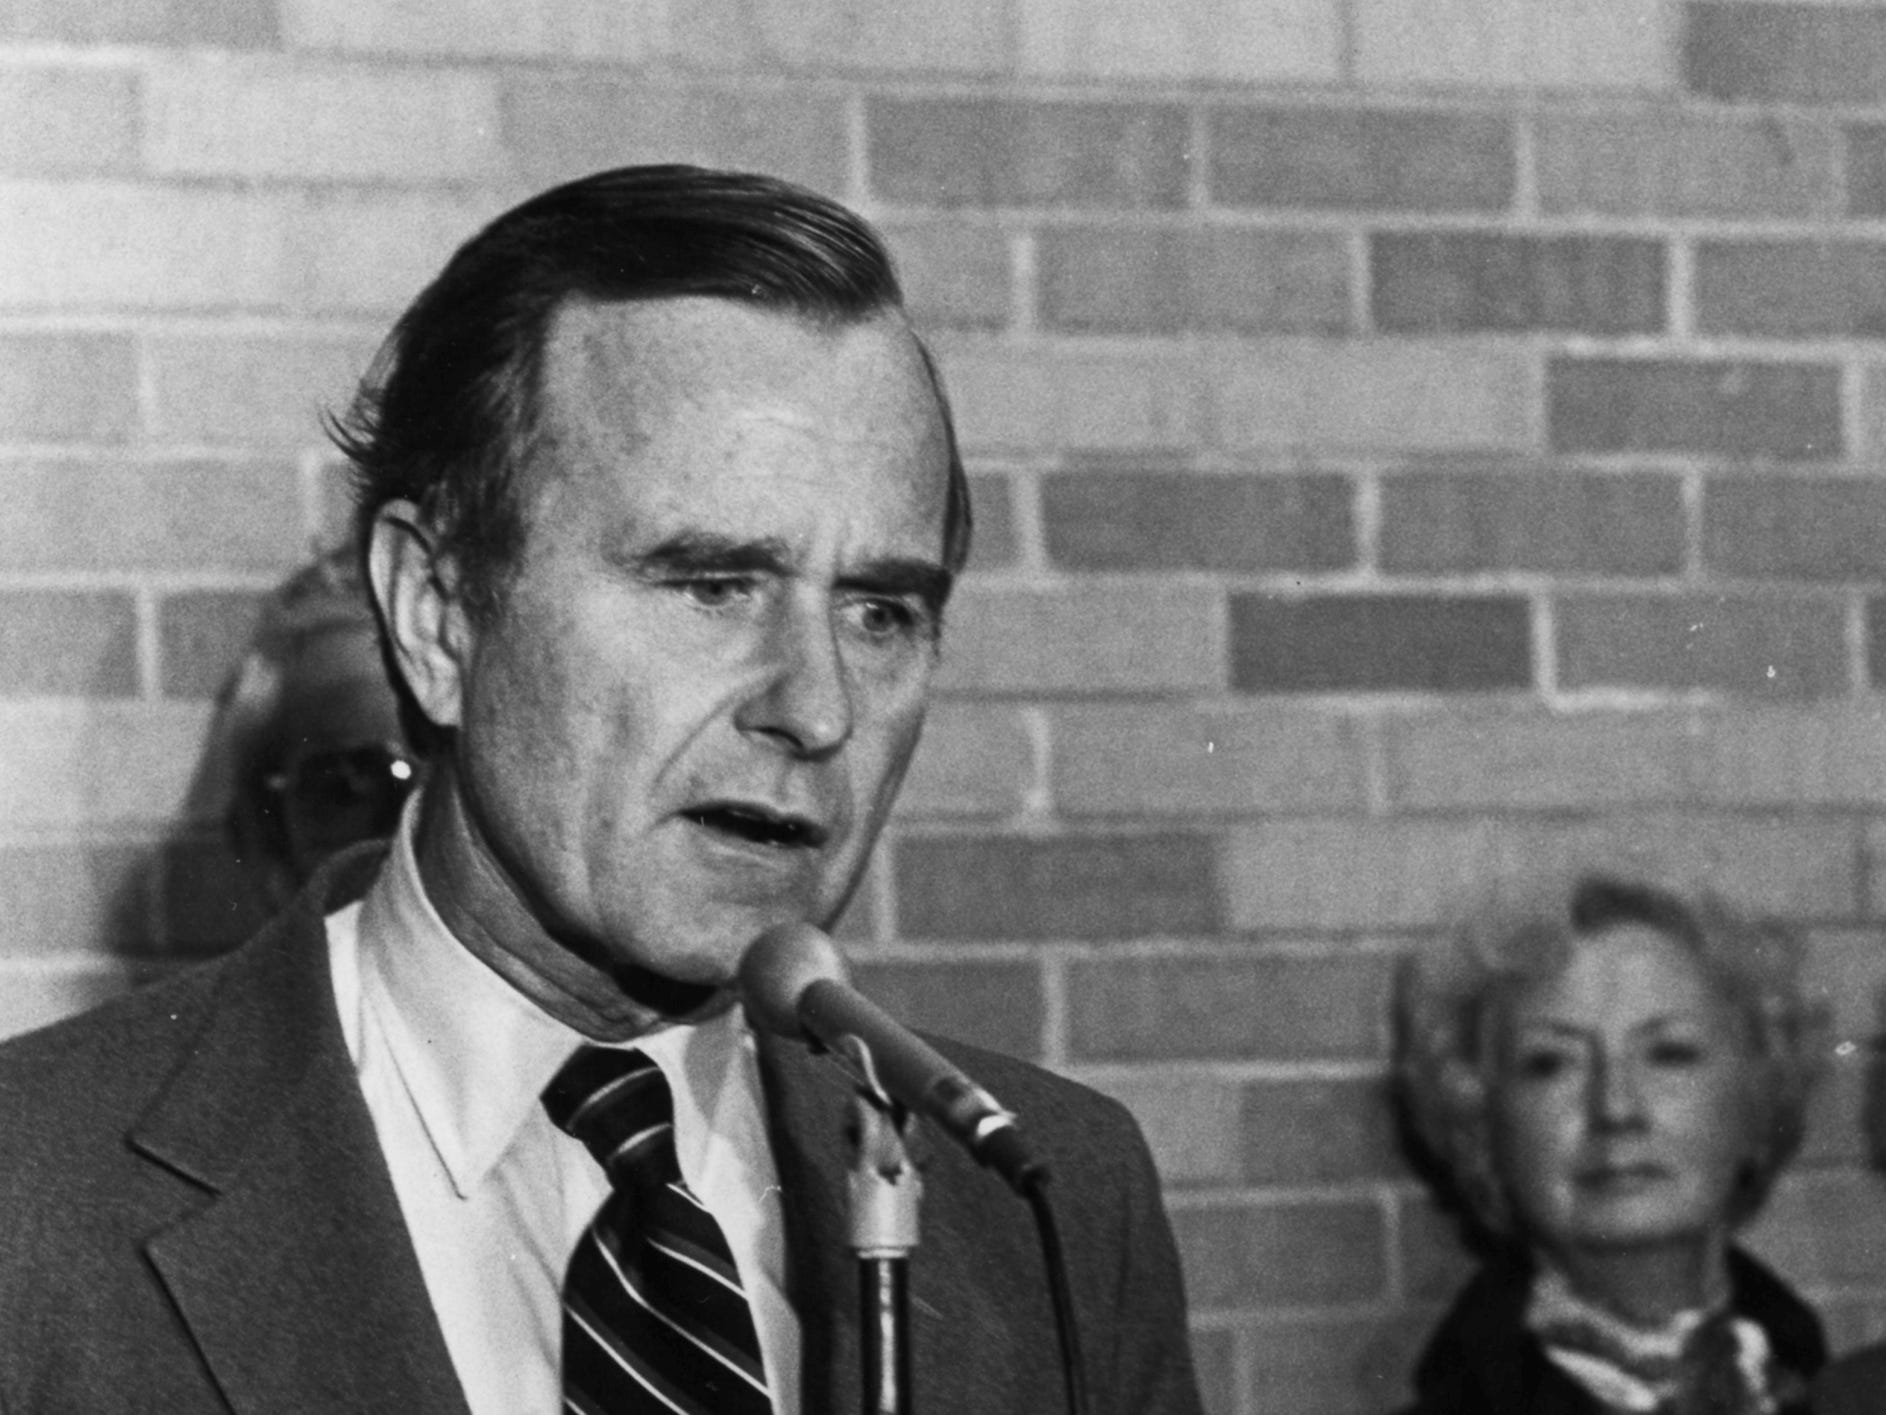 Republican vice presidential candidate George H. W. Bush talks to reporters Oct. 24, 1980 at the Outagamie County Airport.  Post-Crescent photo by Dave Pieper